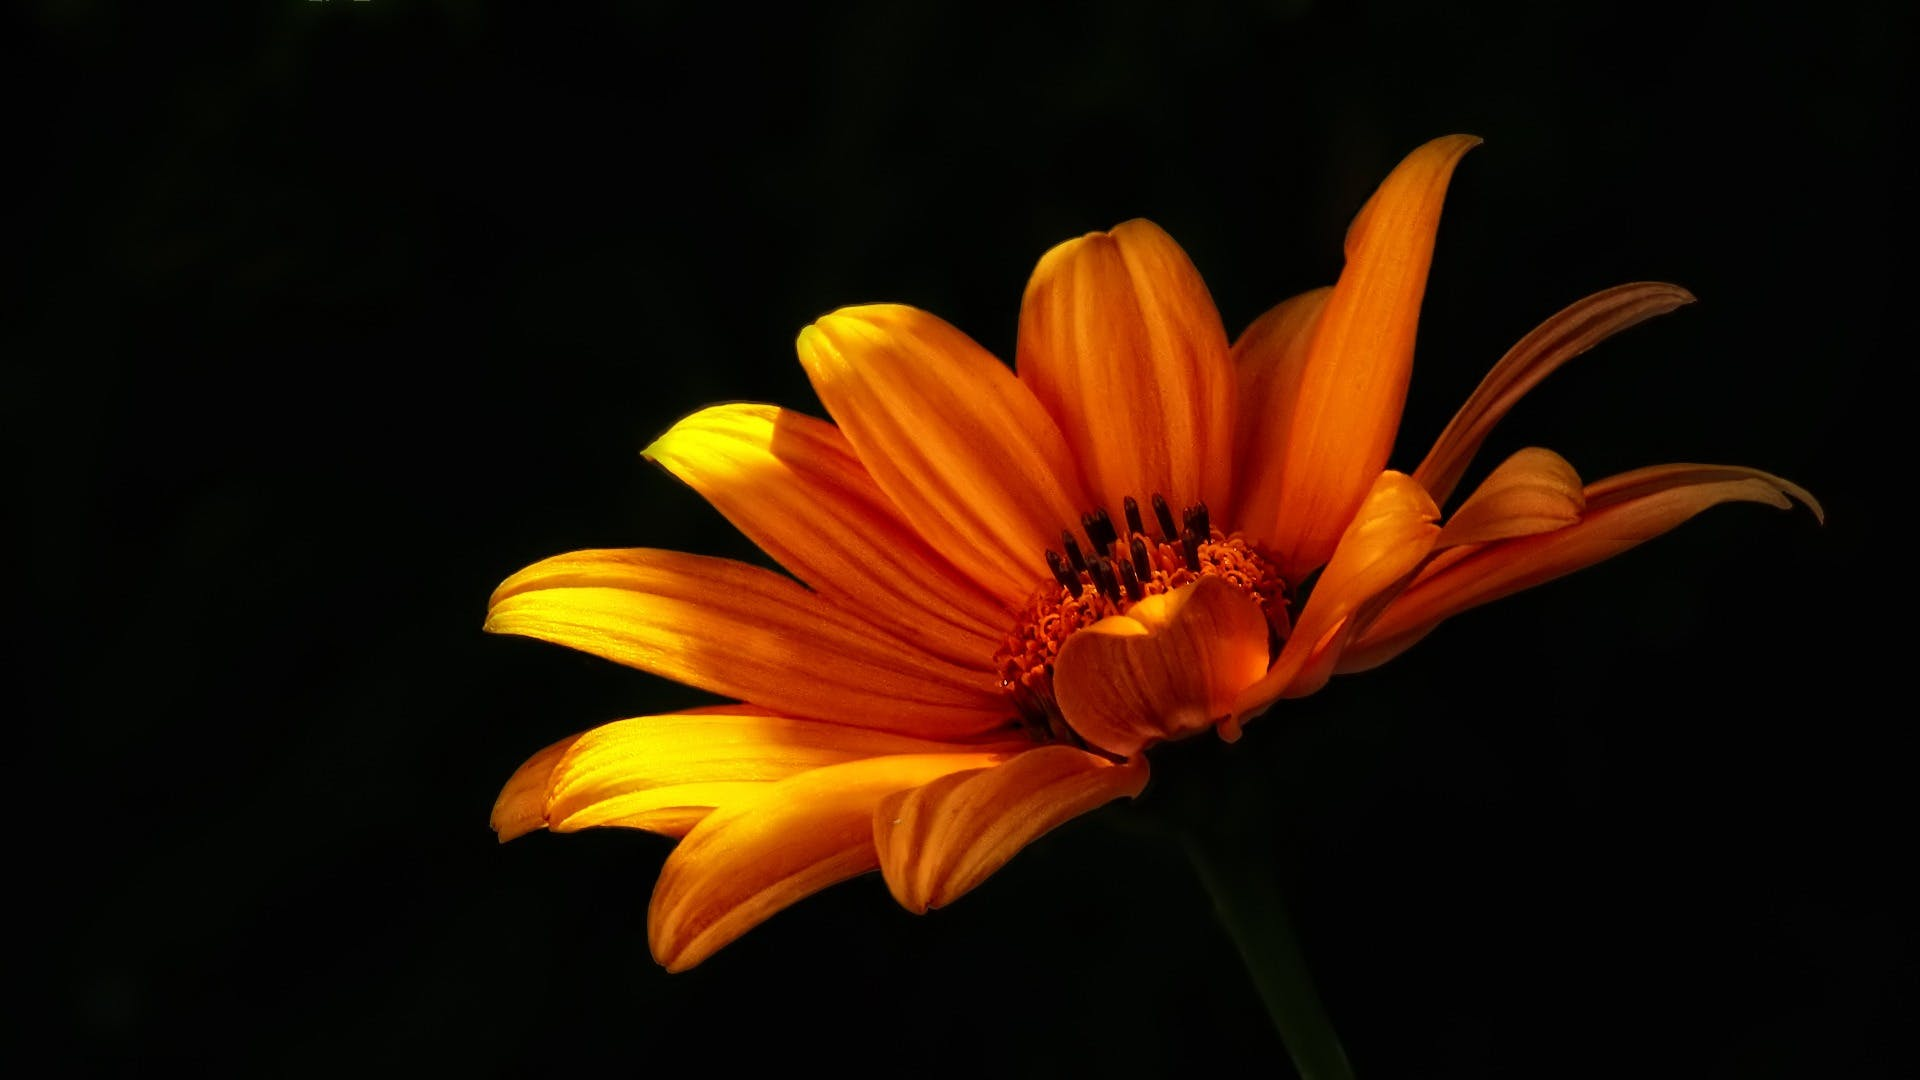 Close-up Photo of Orange Mexican Sunflower in Bloom